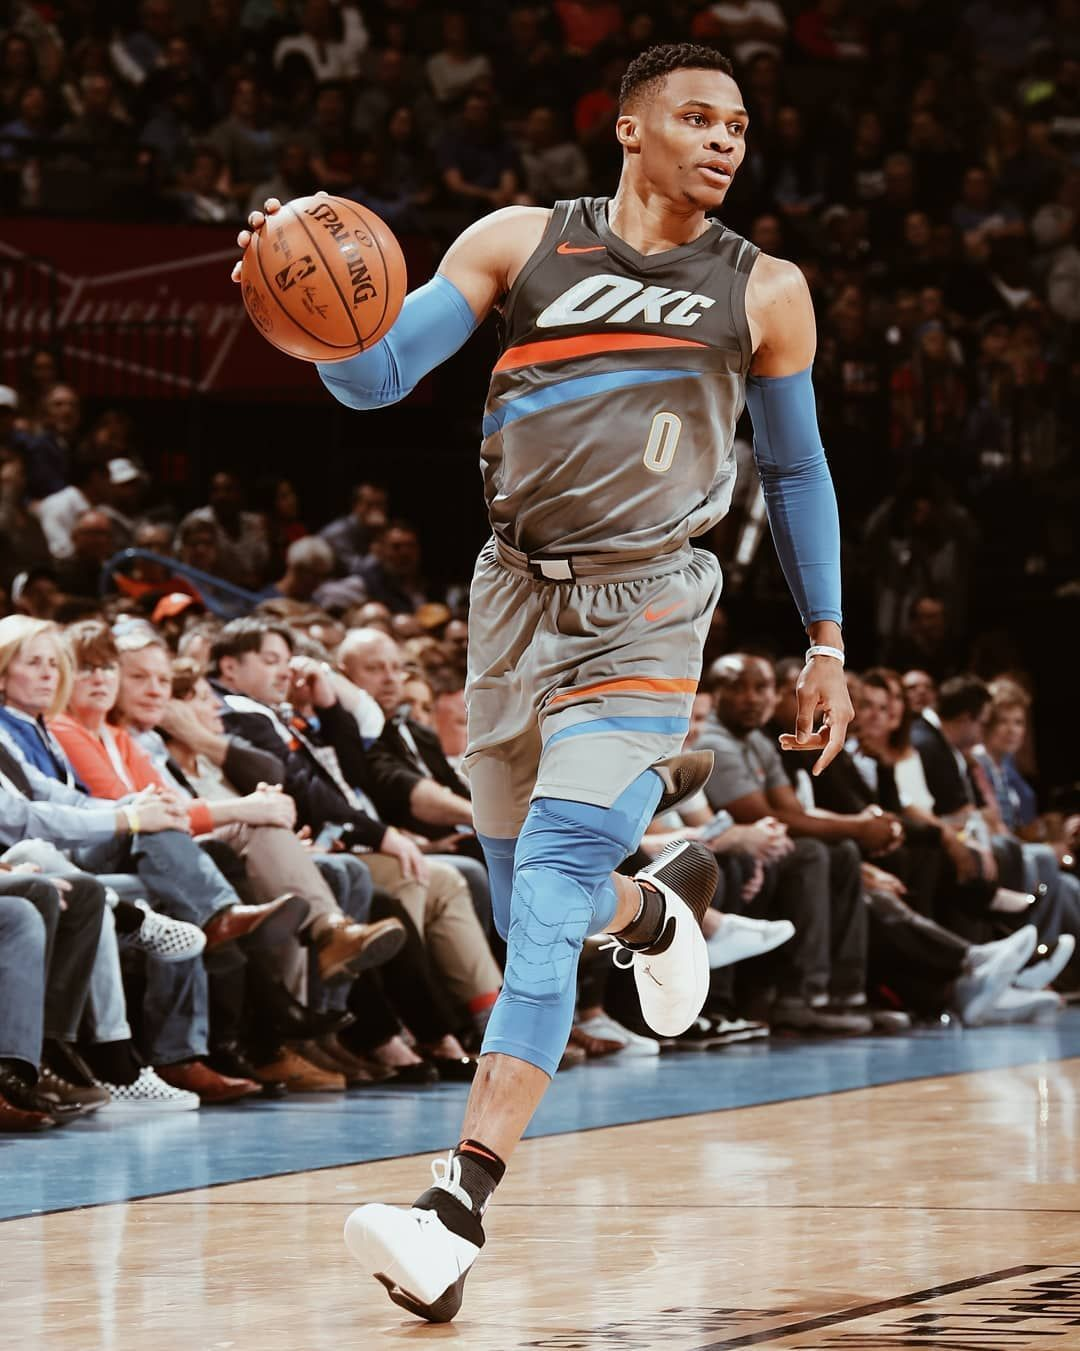 Russel Westbrook Wallpapers Top Free Russel Westbrook